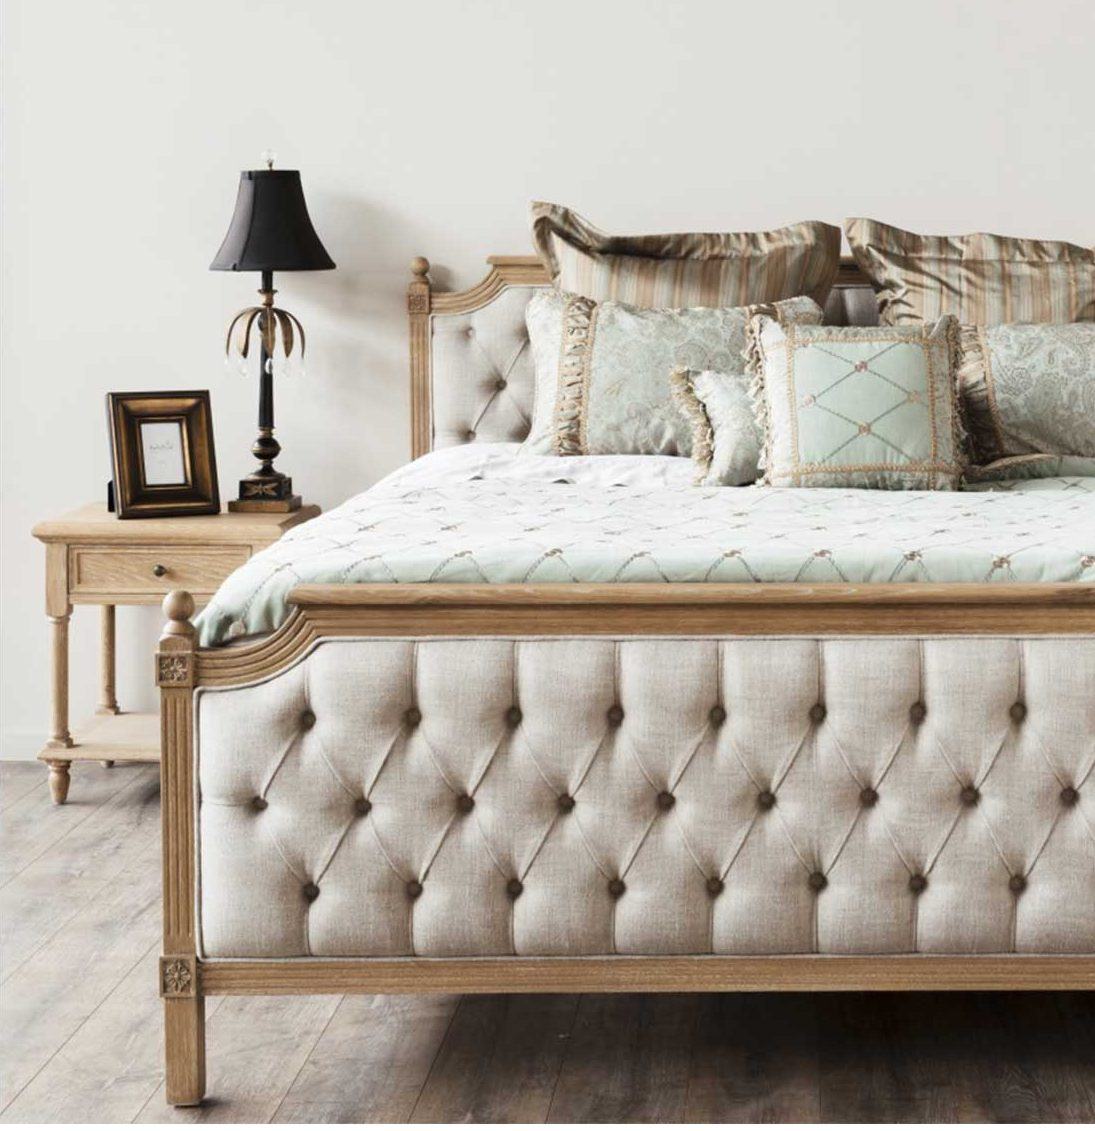 Bed Frame Bedroom Furniture - All 4 Furnishings